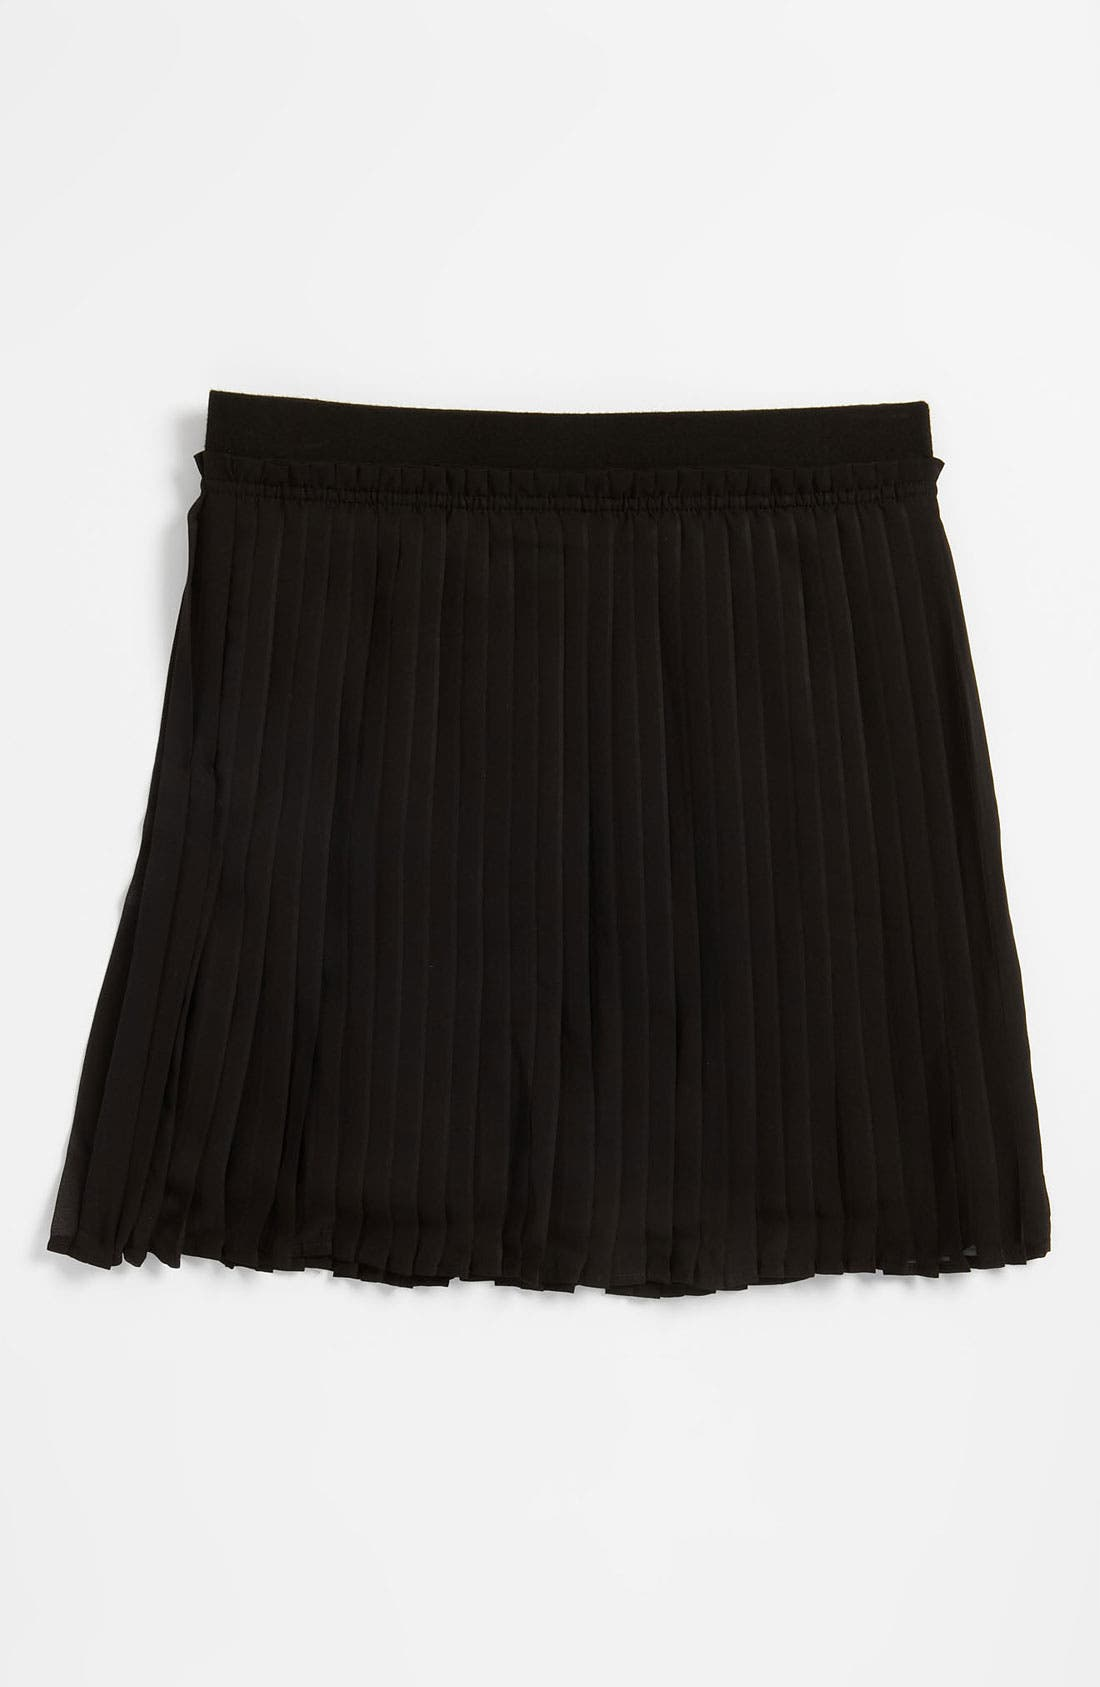 Alternate Image 1 Selected - Ruby & Bloom 'Eloise' Pleated Skirt (Big Girls)